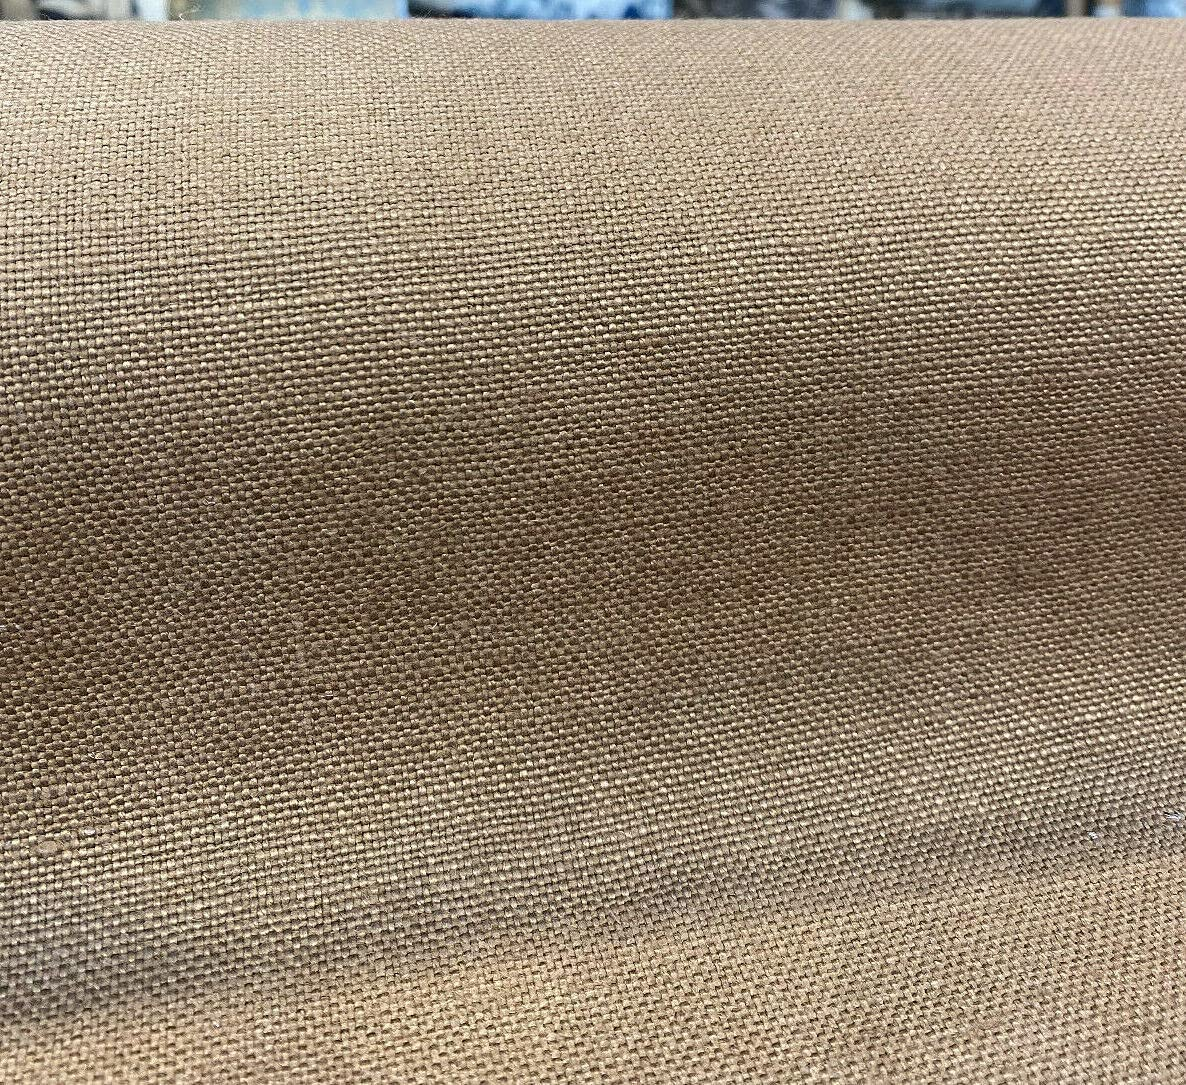 100% specialty shop Belgian Linen Libeco Chalet Sepia the By Fabric OFFicial site Brown Yard